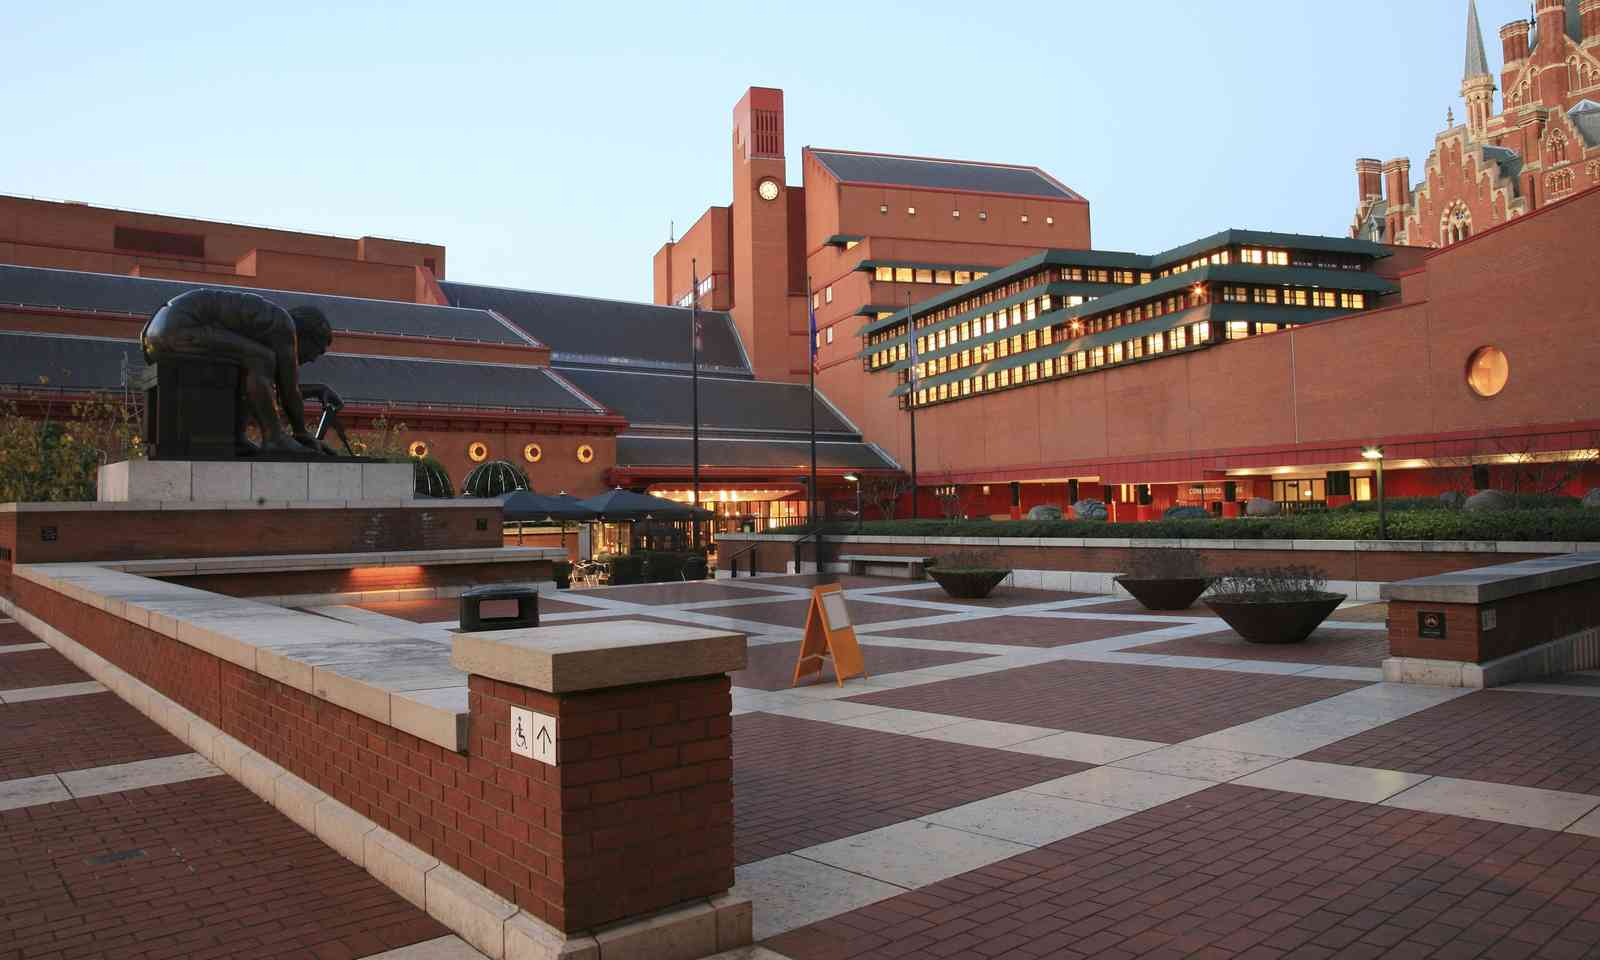 The British Library, London (Dreamstime)